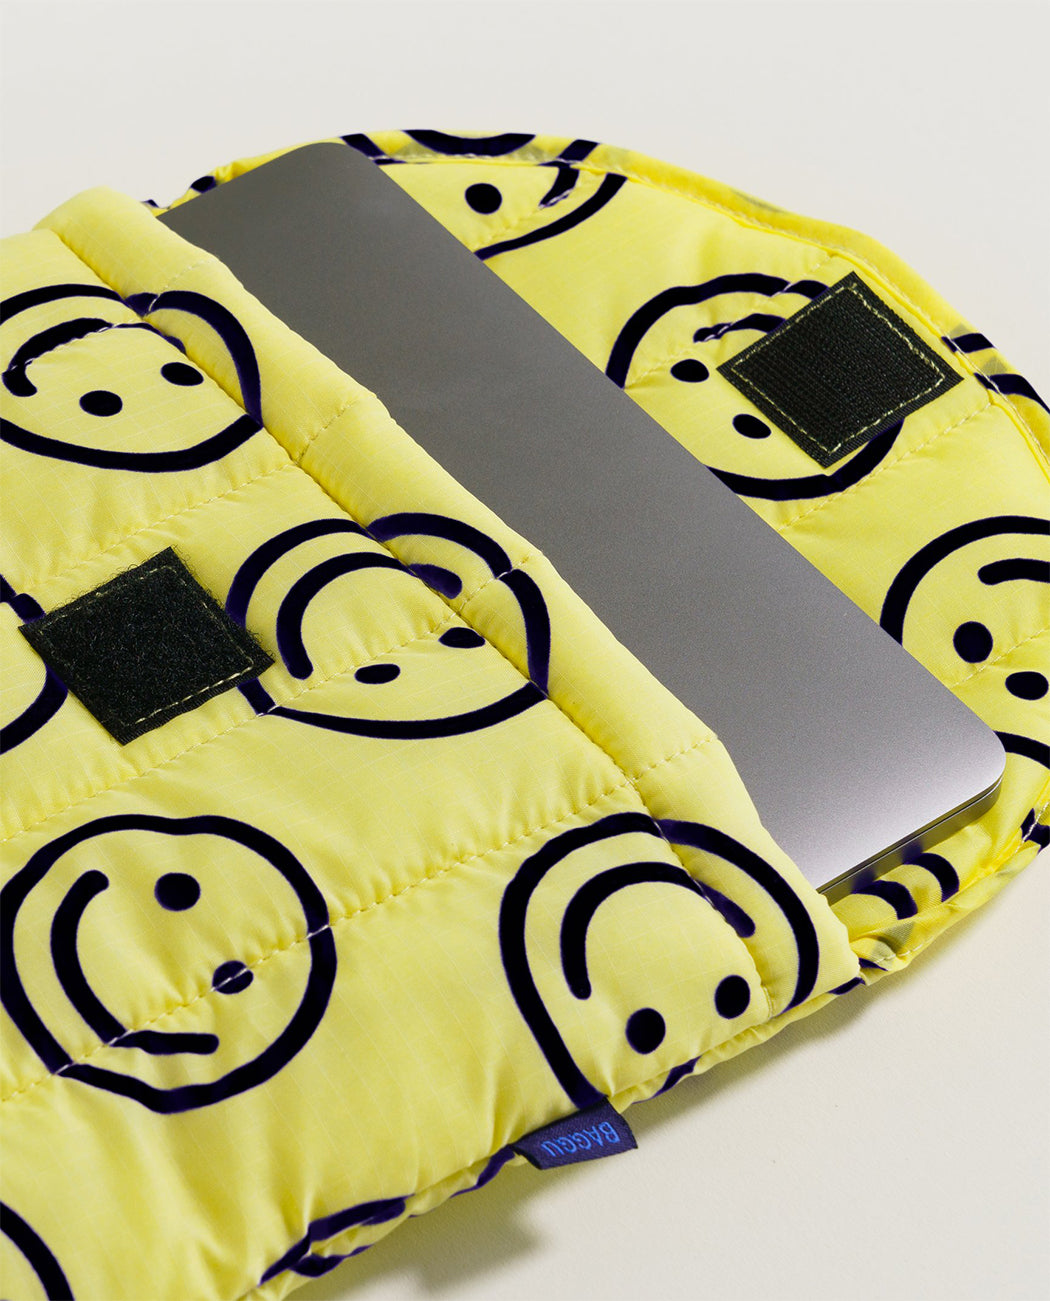 Baggu Puffy Laptop Sleeve 13 inch 16 yellow happy Utrecht Nederland europe